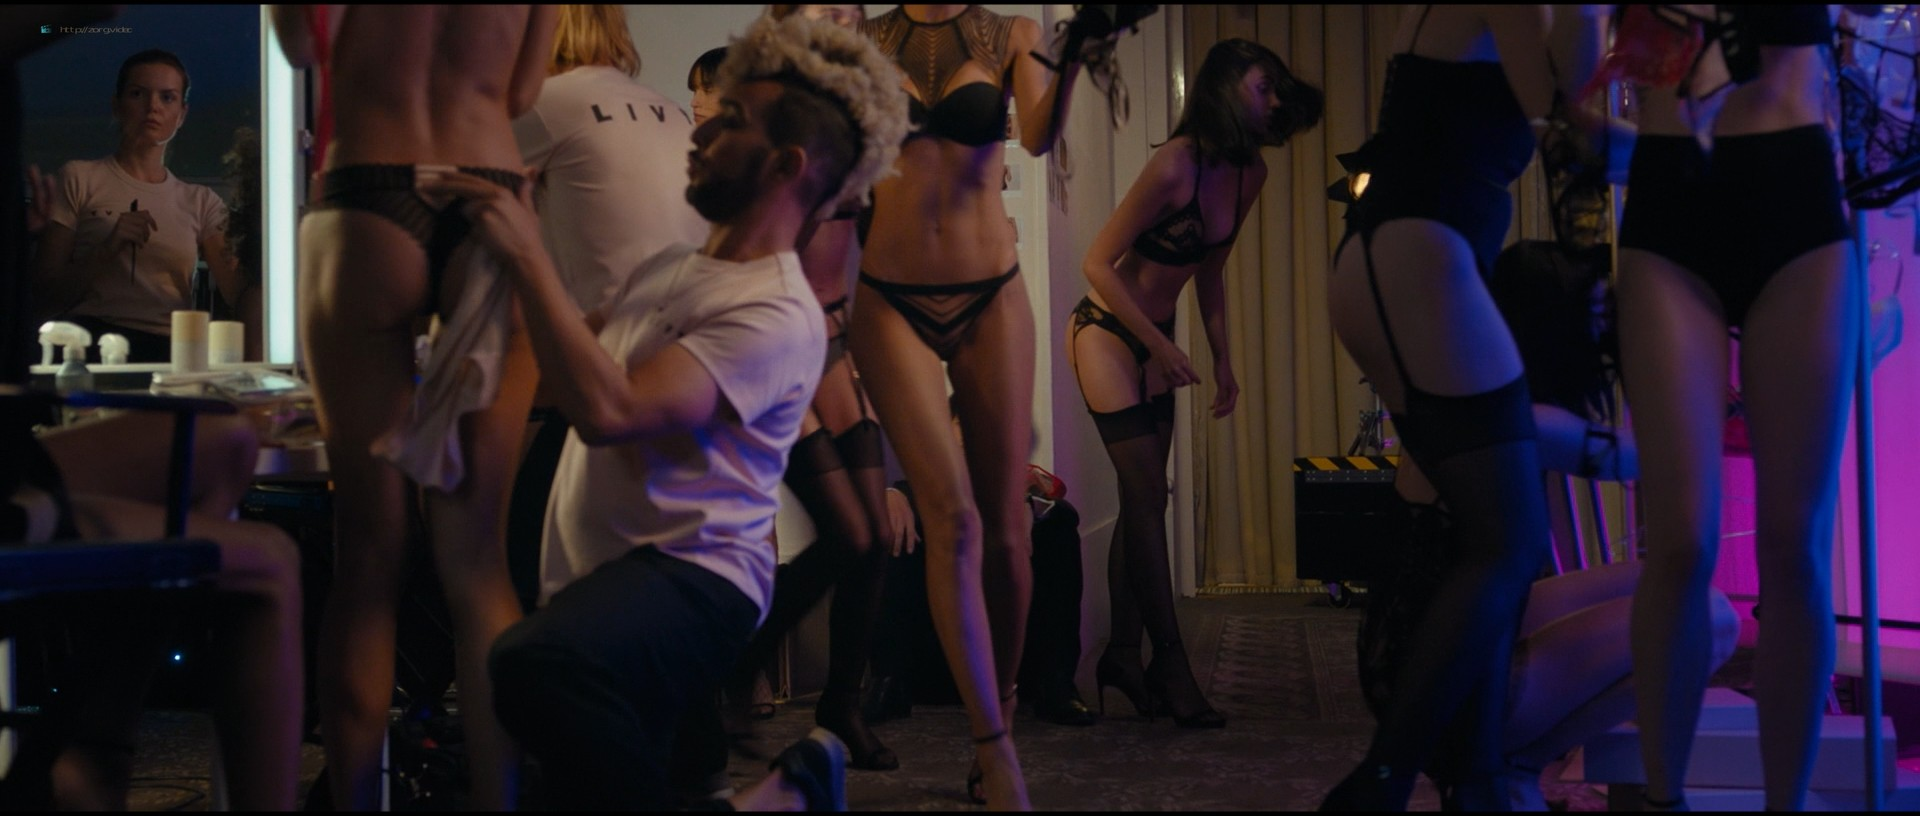 Pamela Anderson sexy Élodie Fontan and others hot - Nicky Larson et le parfum de Cupidon (2018) 1080p BluRay (11)